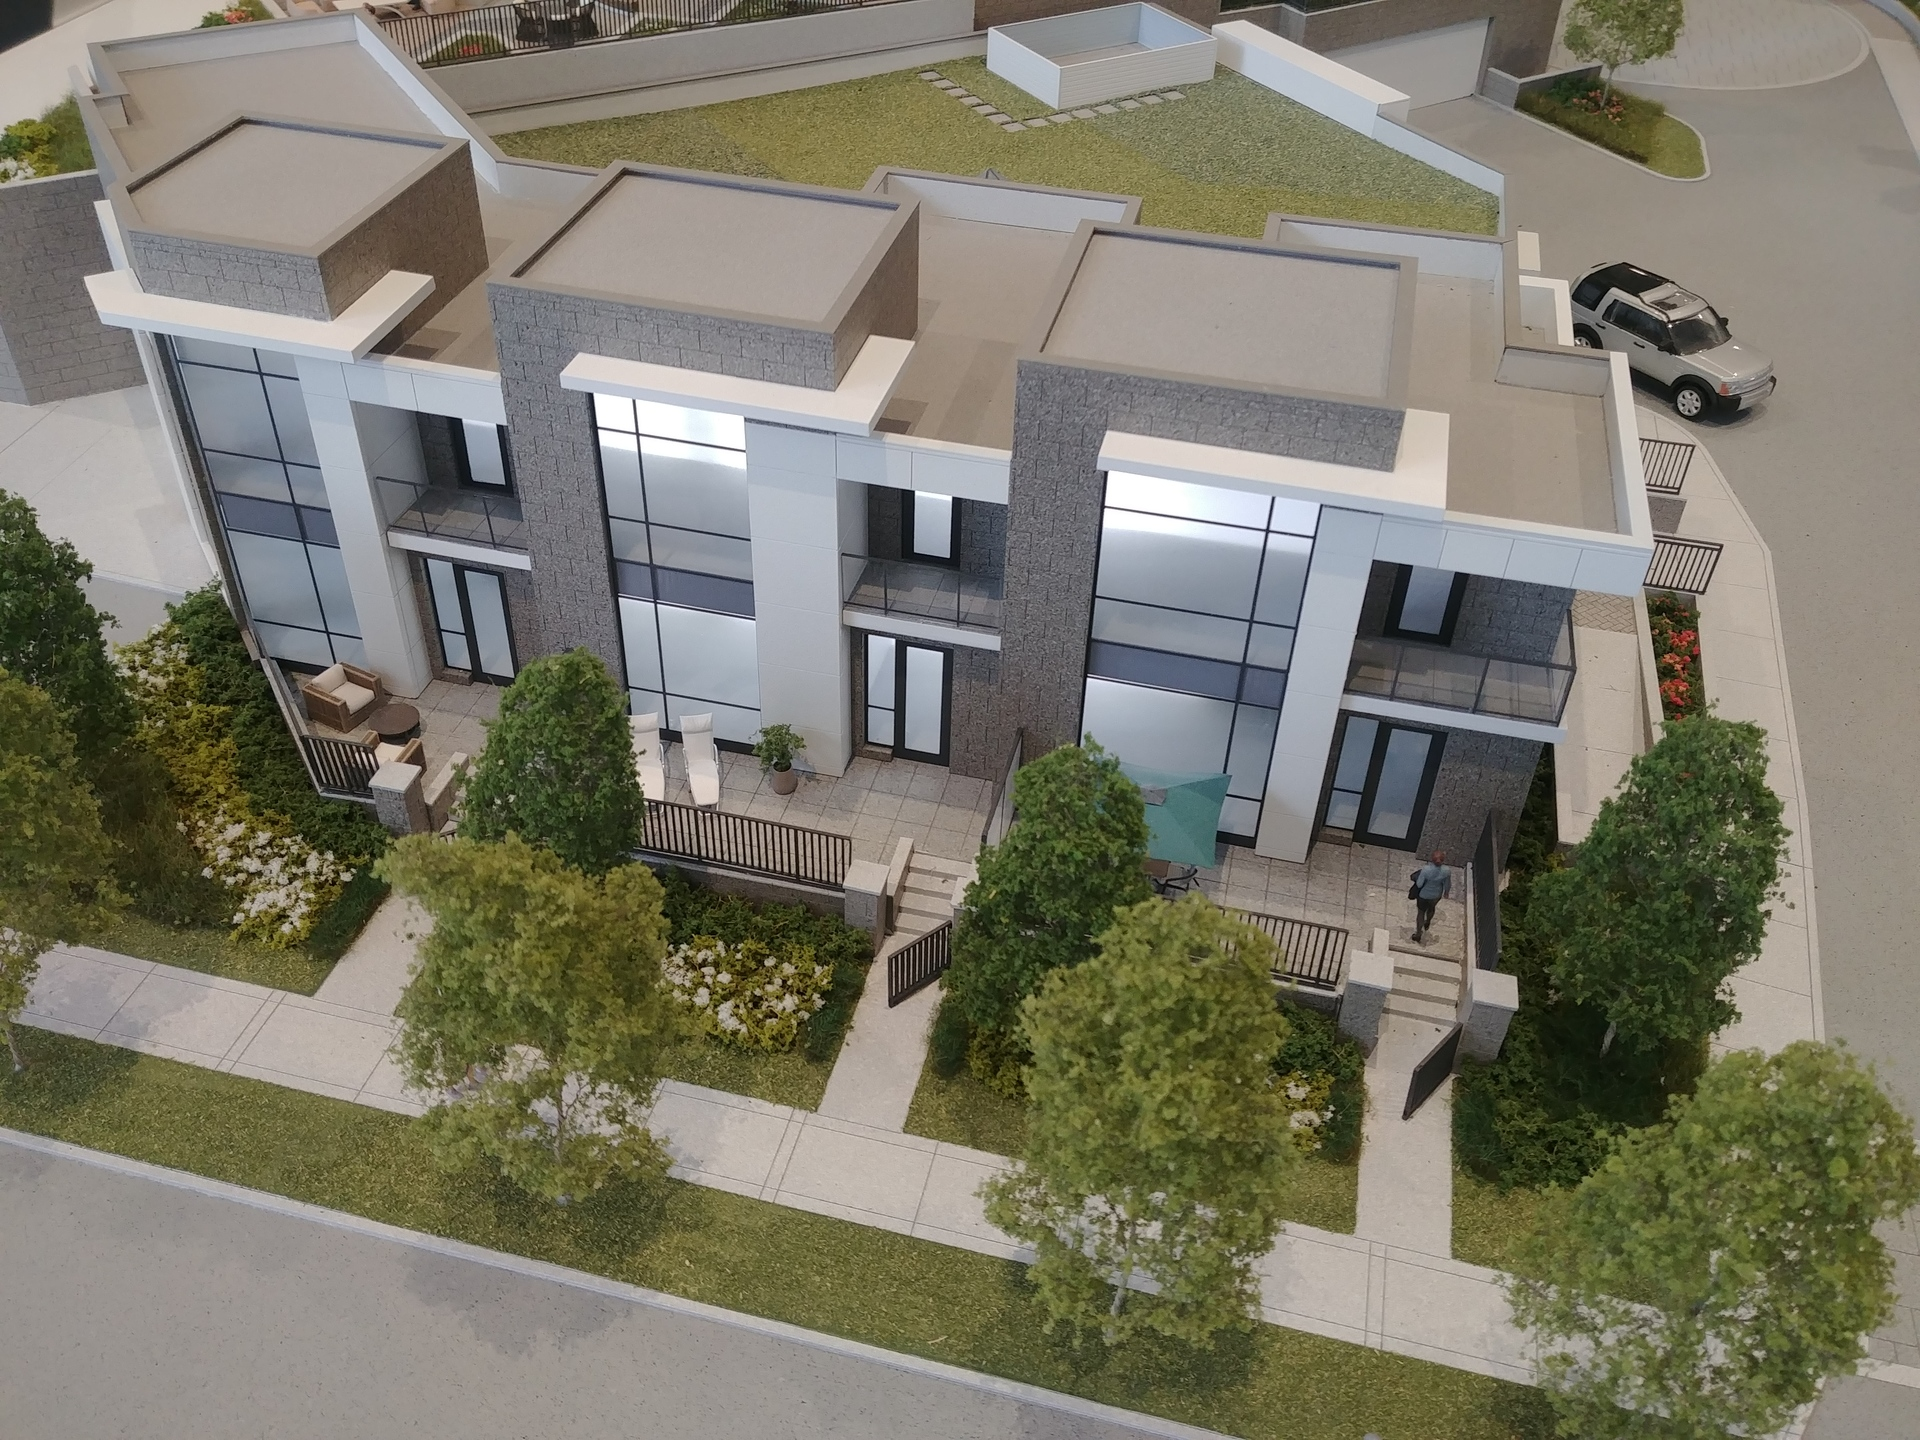 centra-townhomes at Centra Surrey City Centre (13868 101 Avenue, Whalley, North Surrey)